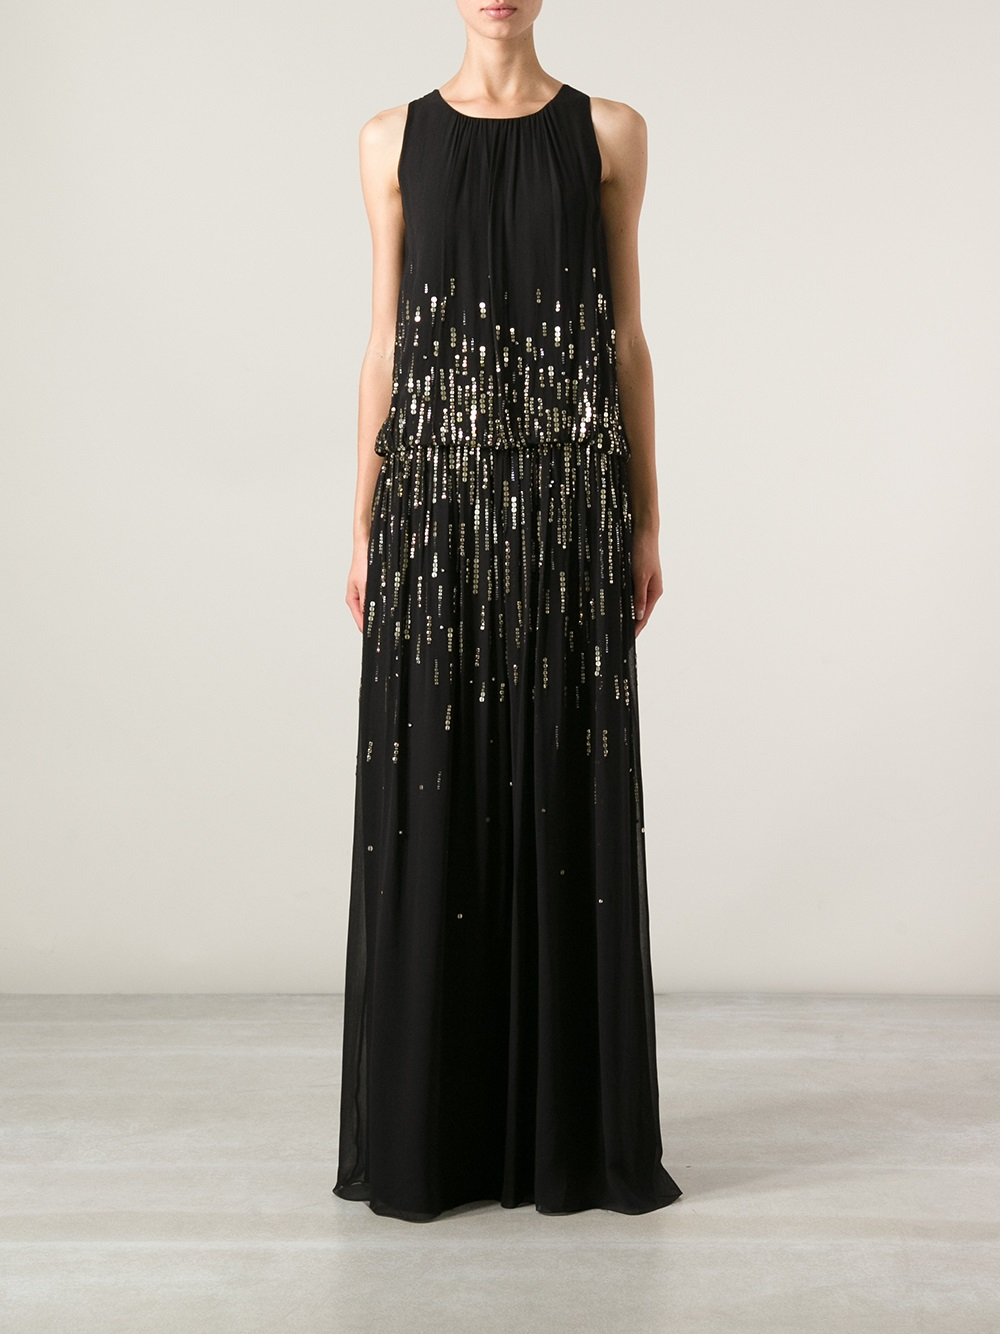 Alice by temperley Sequin Embellished Maxi Dress in Black | Lyst